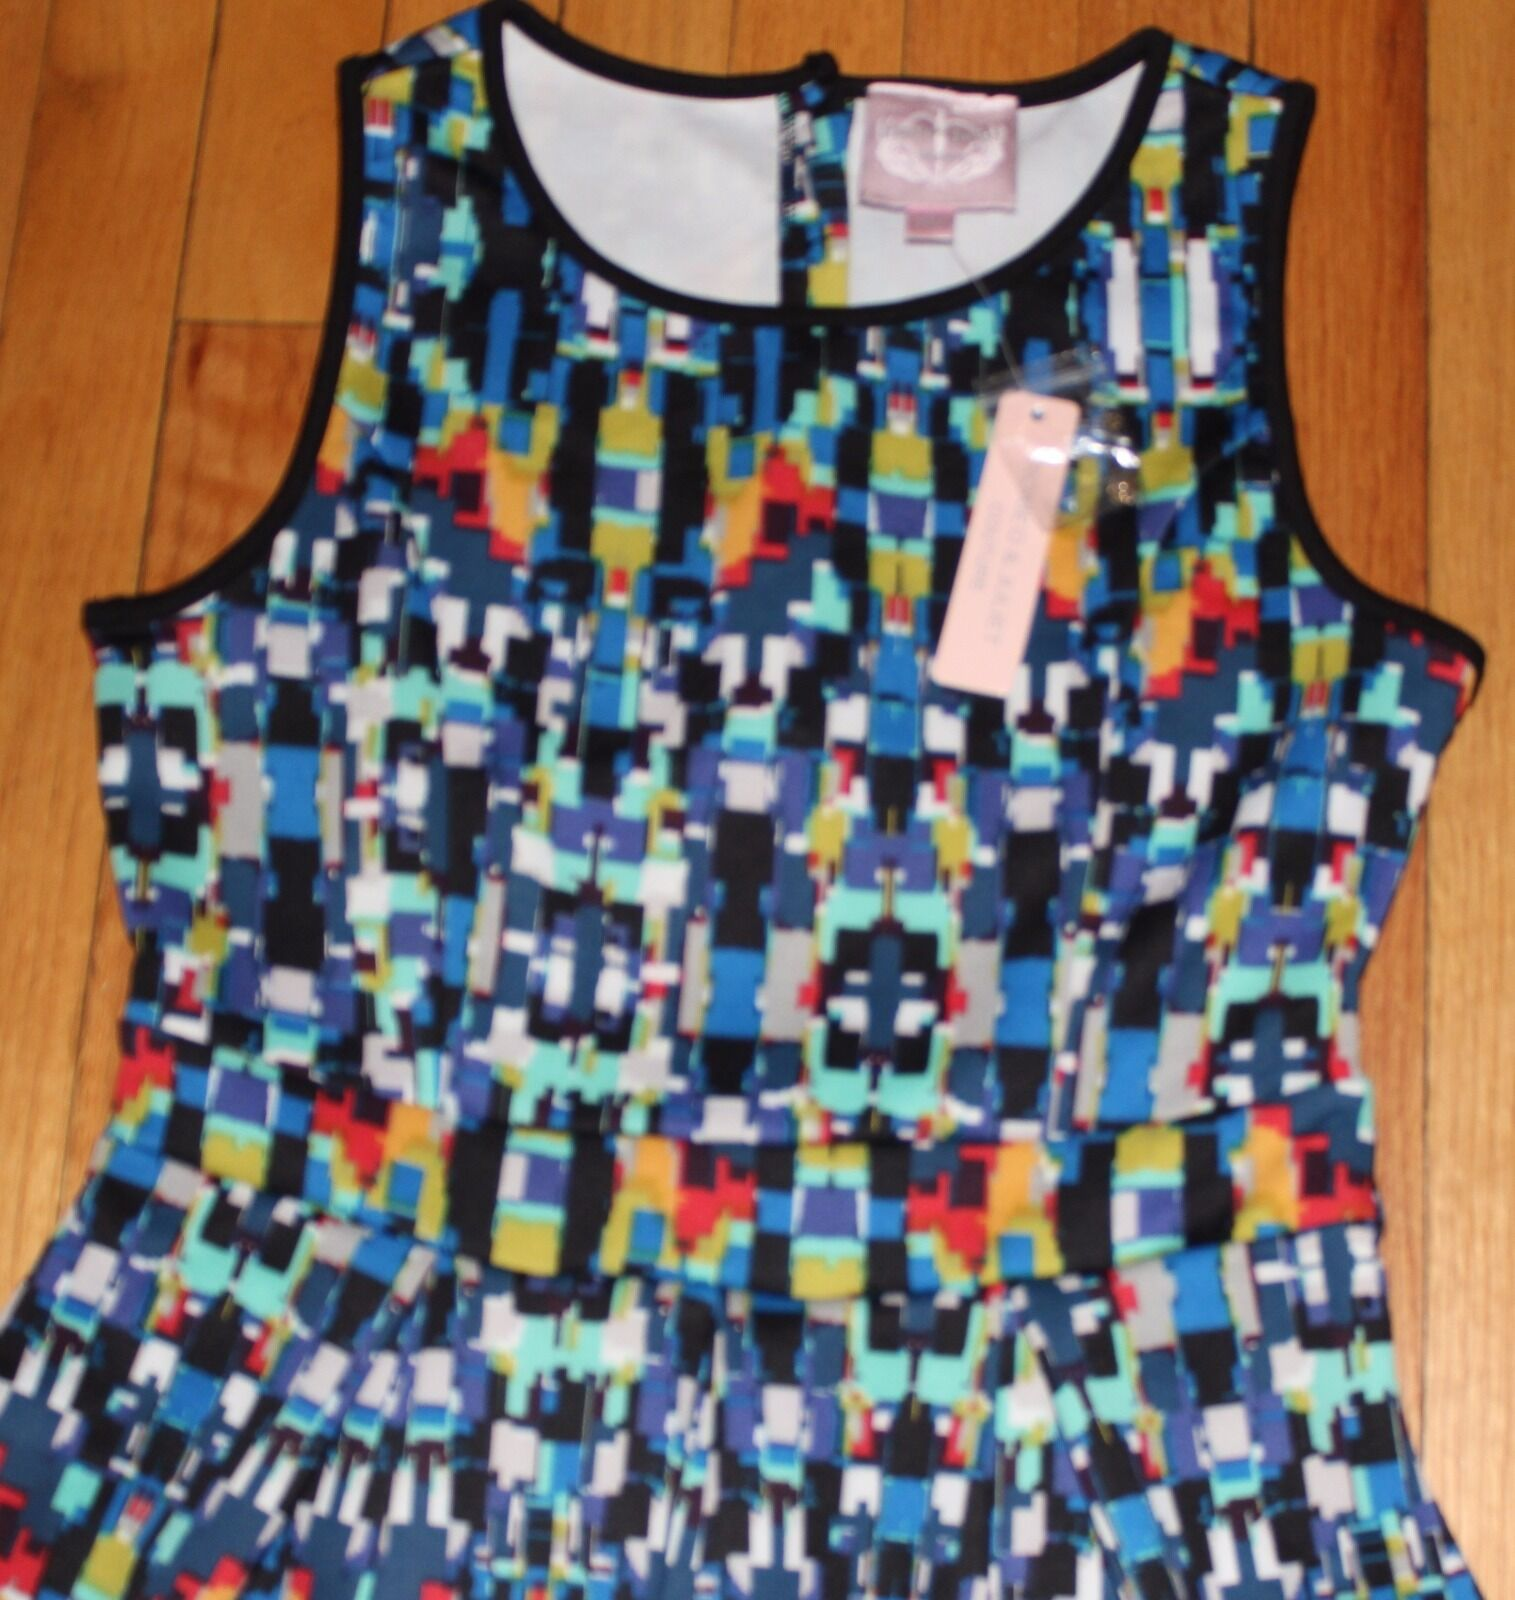 175 175 175 ROMEO & JULIET COUTURE MULTIcolorD PLEATED CASUAL DRESS SZ MEDIUM 46b259